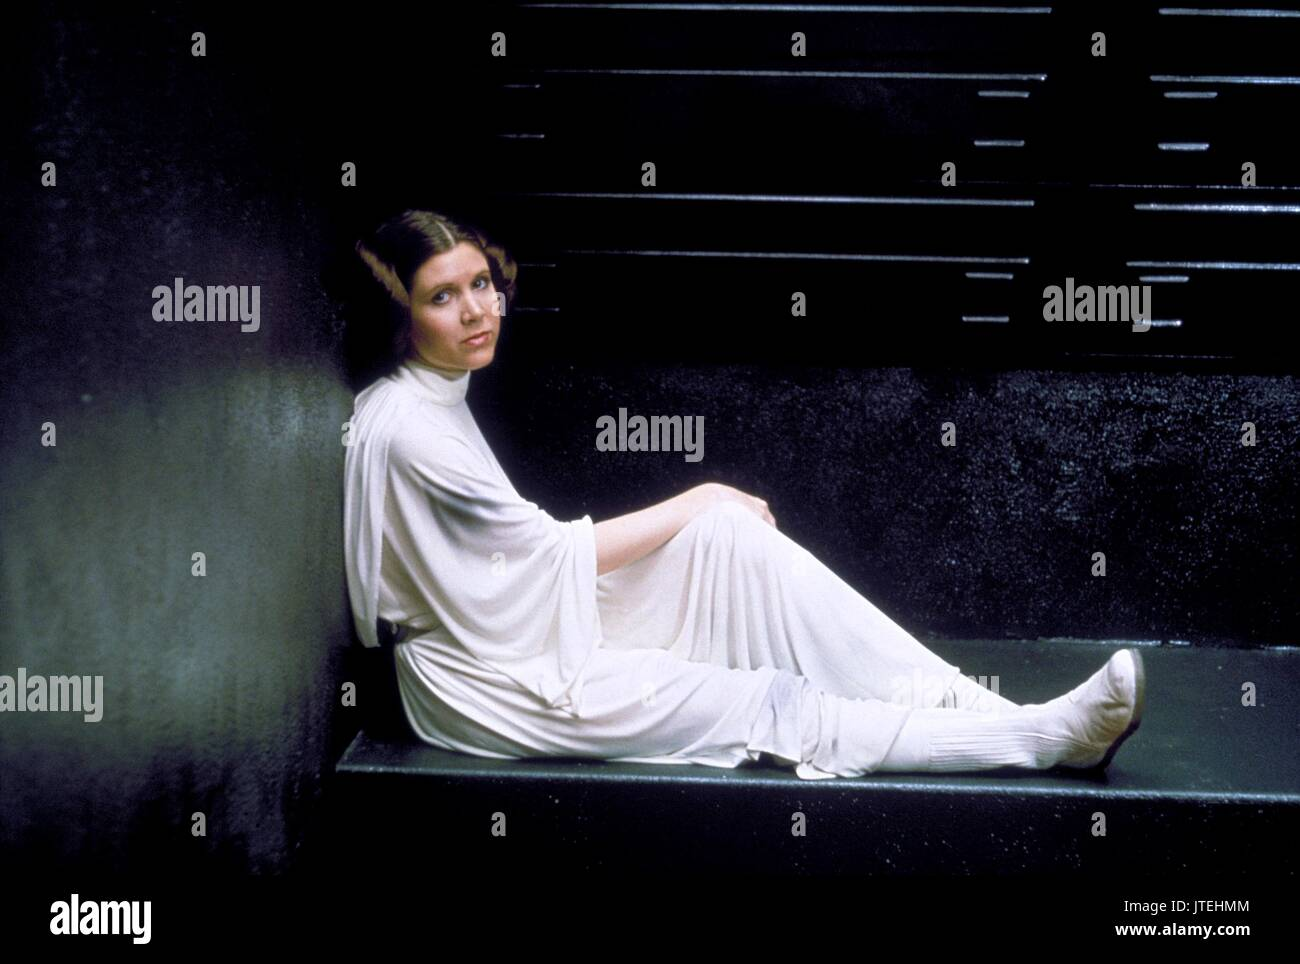 Star Wars Episode Iv Eine Neue Hoffnung High Resolution Stock Photography And Images Alamy